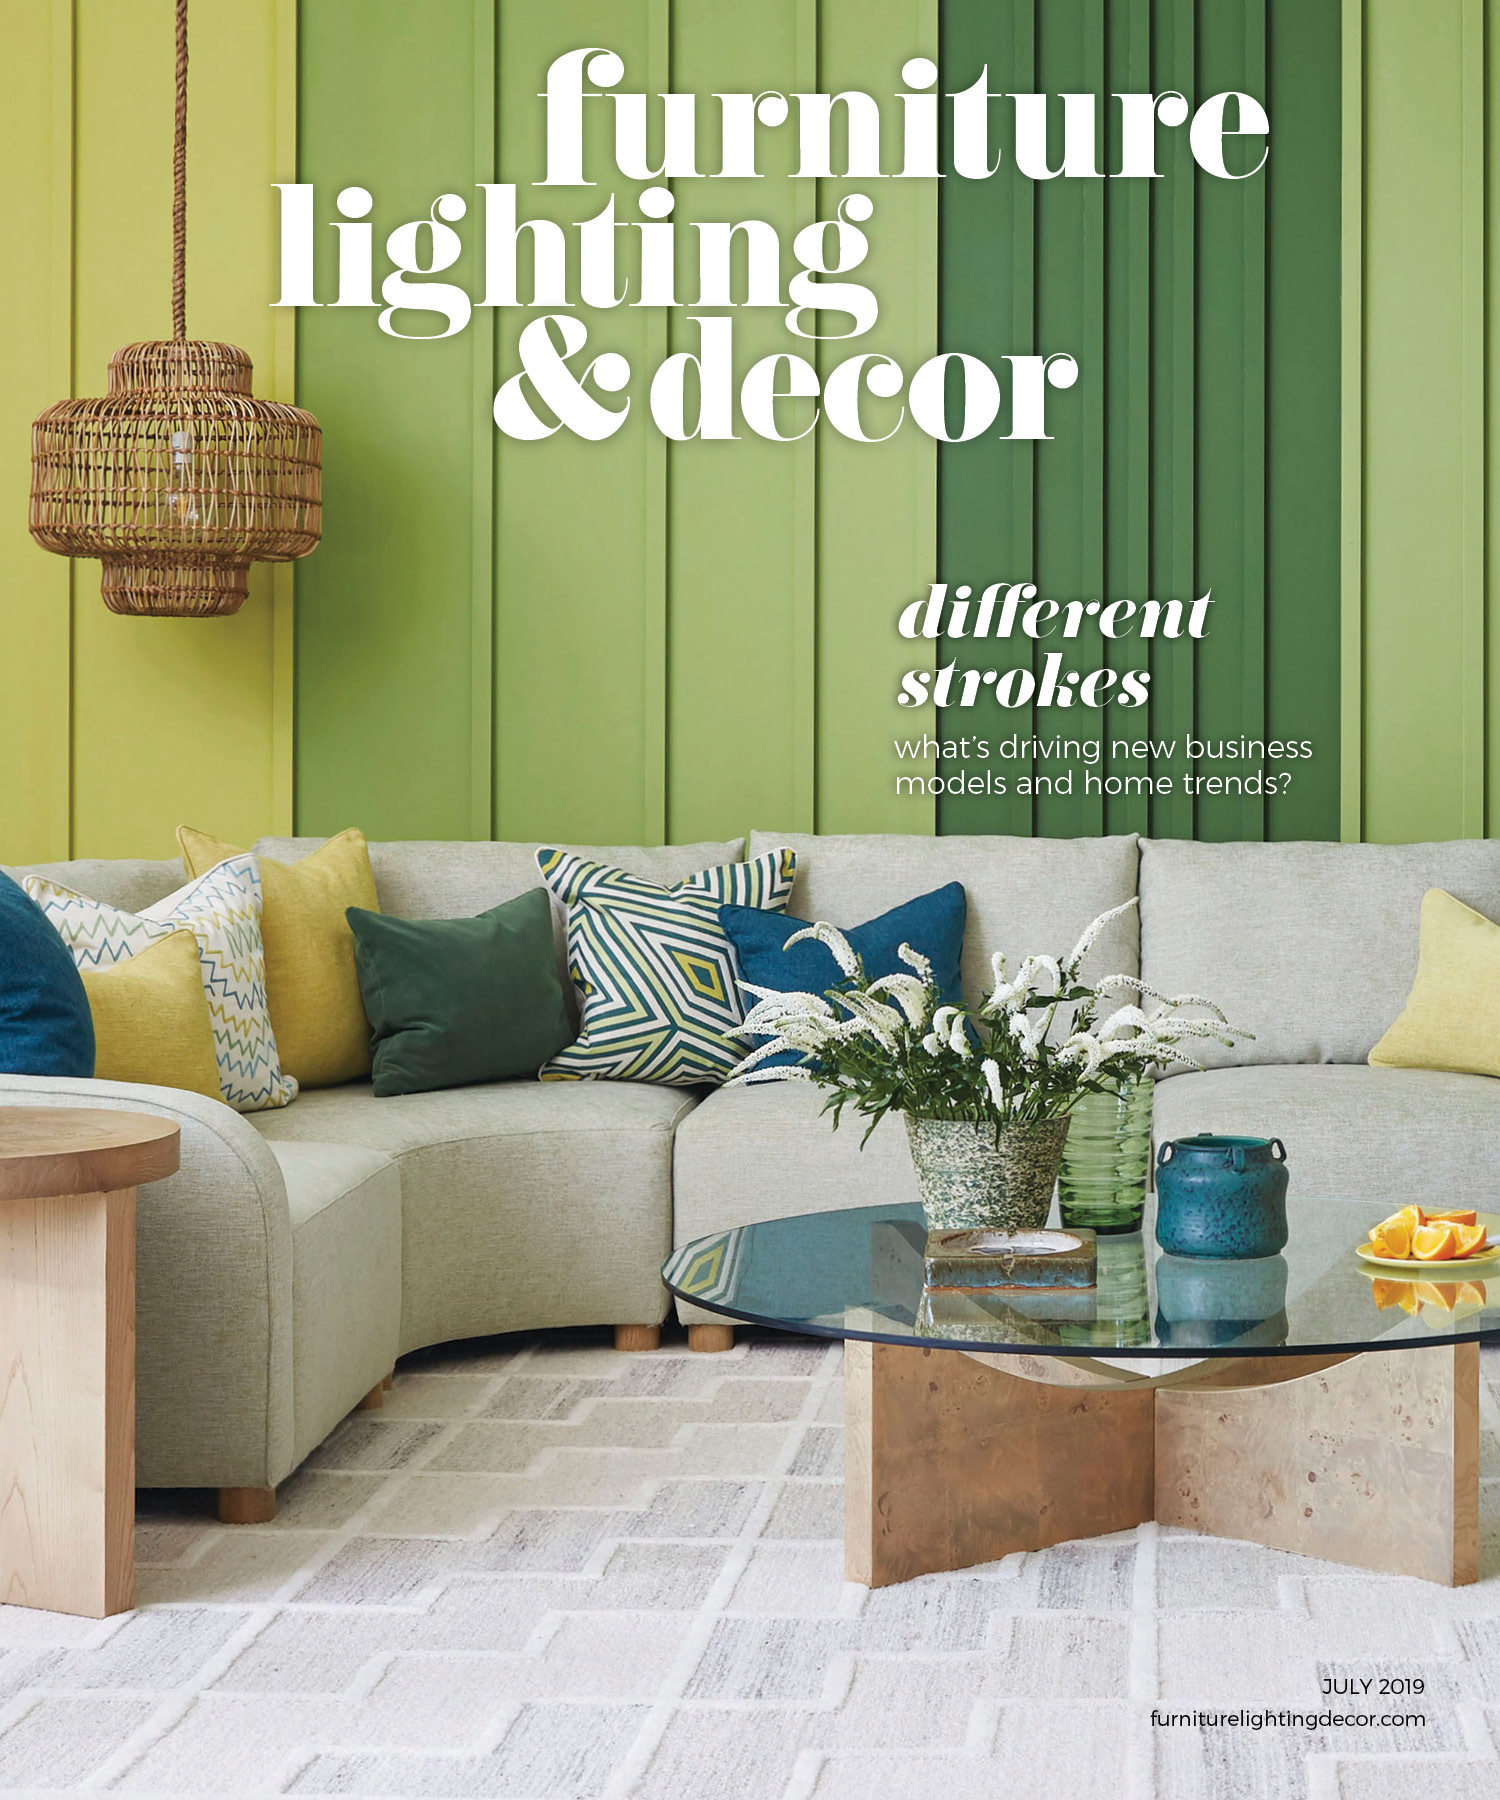 Furniture, Lighting & Decor July 2019